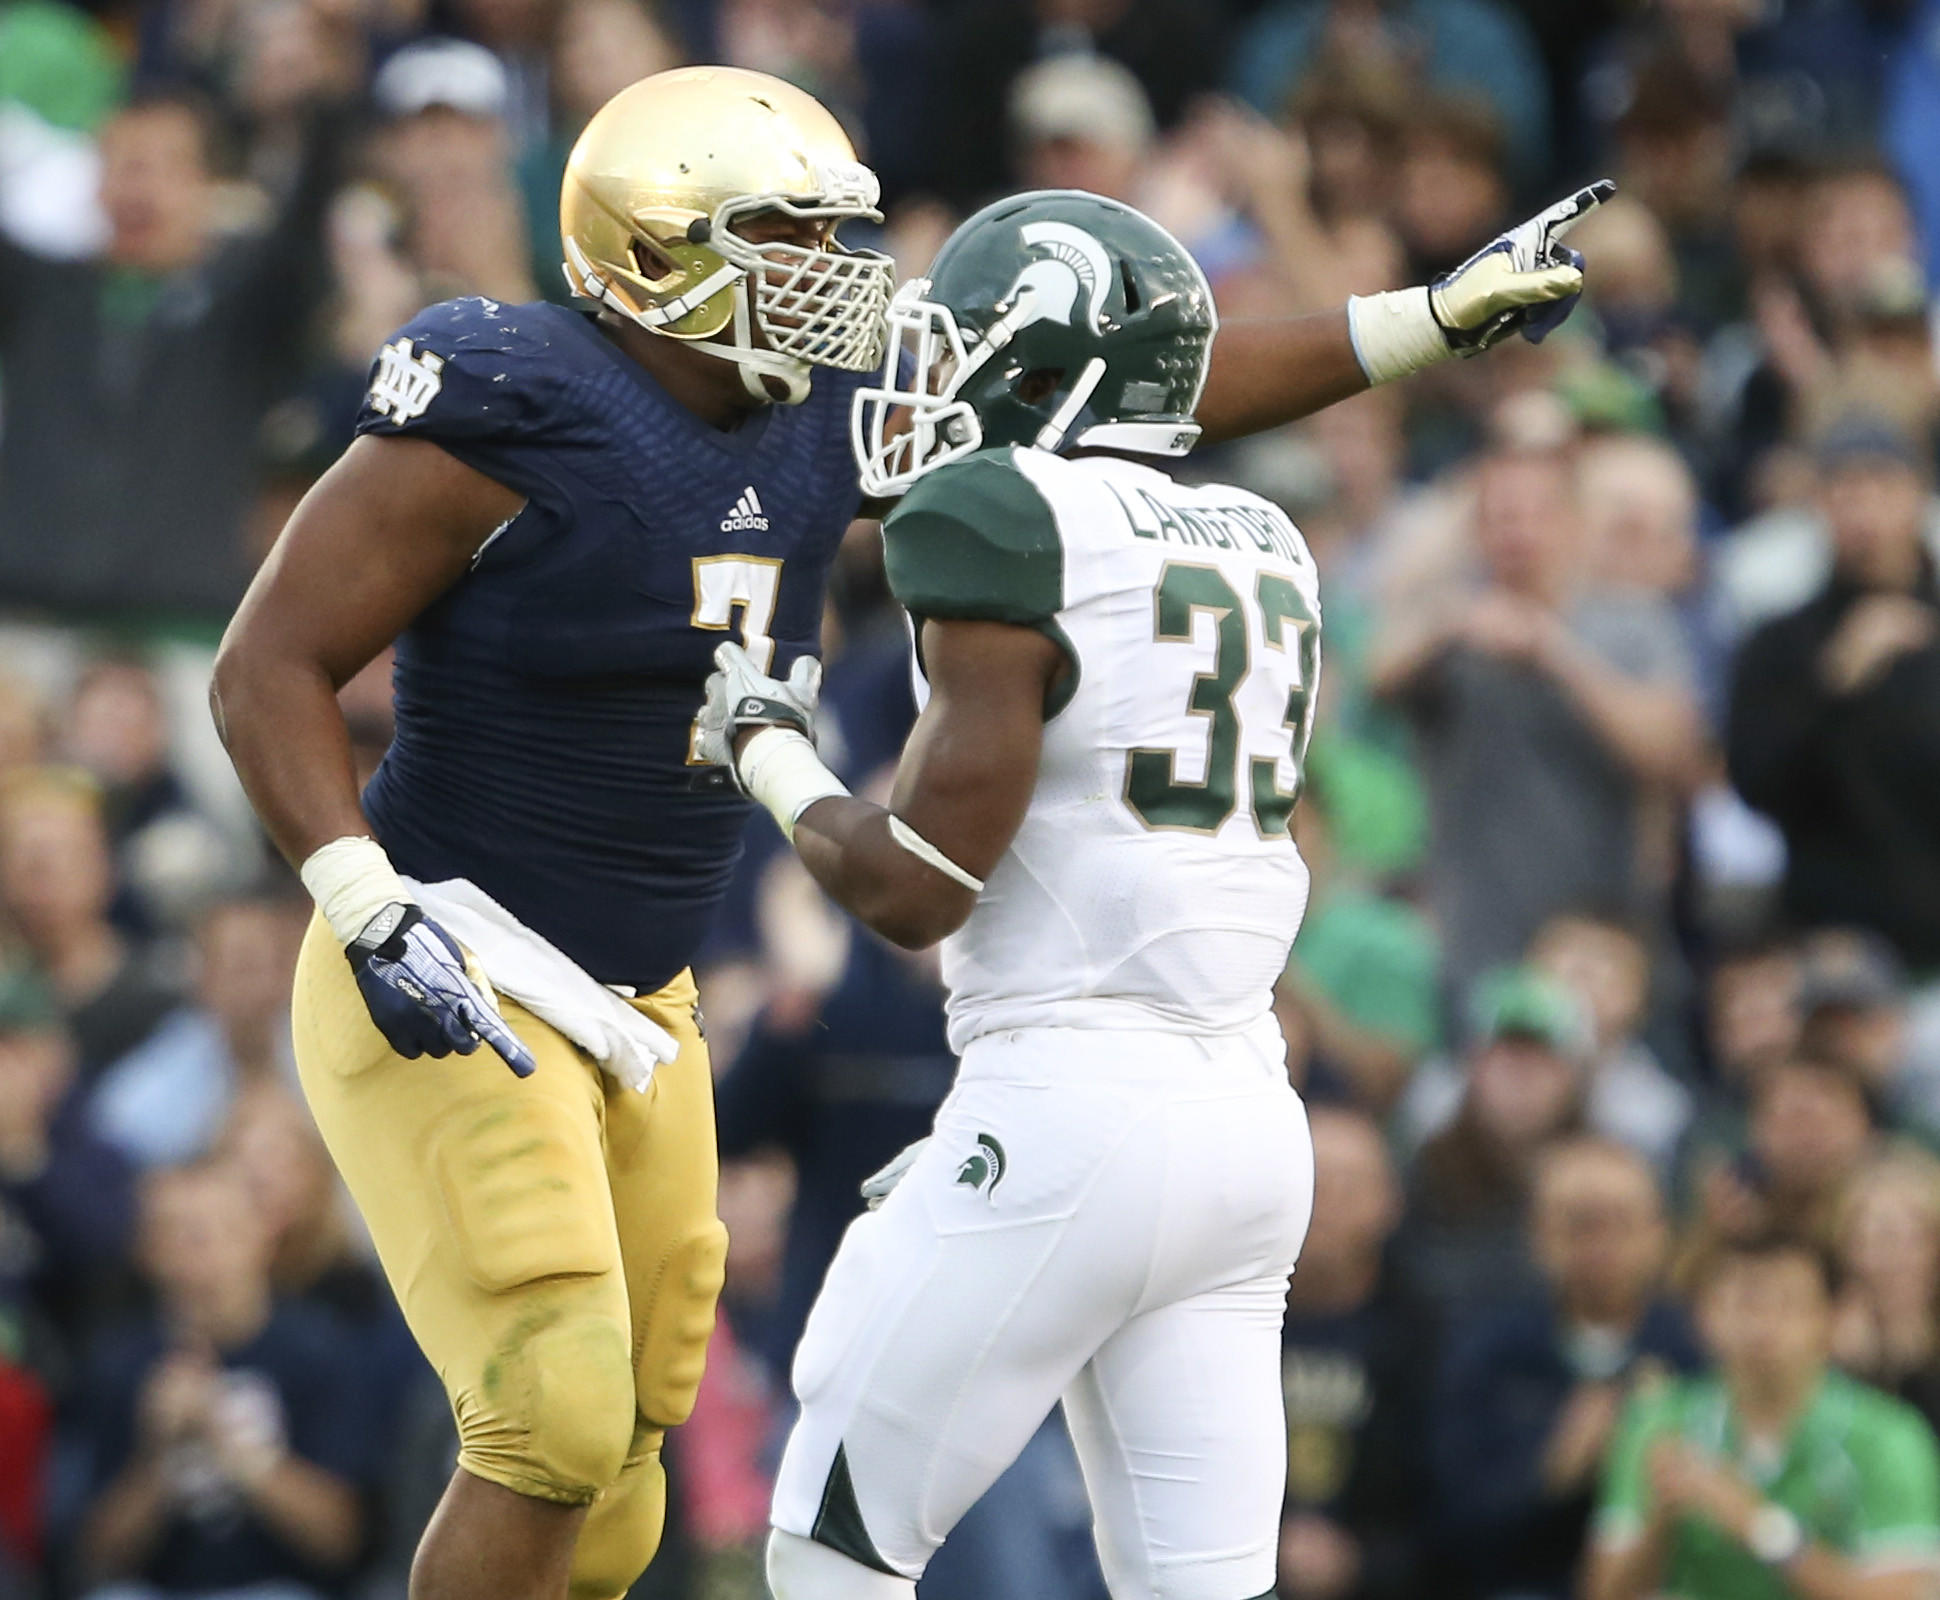 Notre Dame defensive lineman Stephon Tuitt points to his bench after a sack against Michigan State.